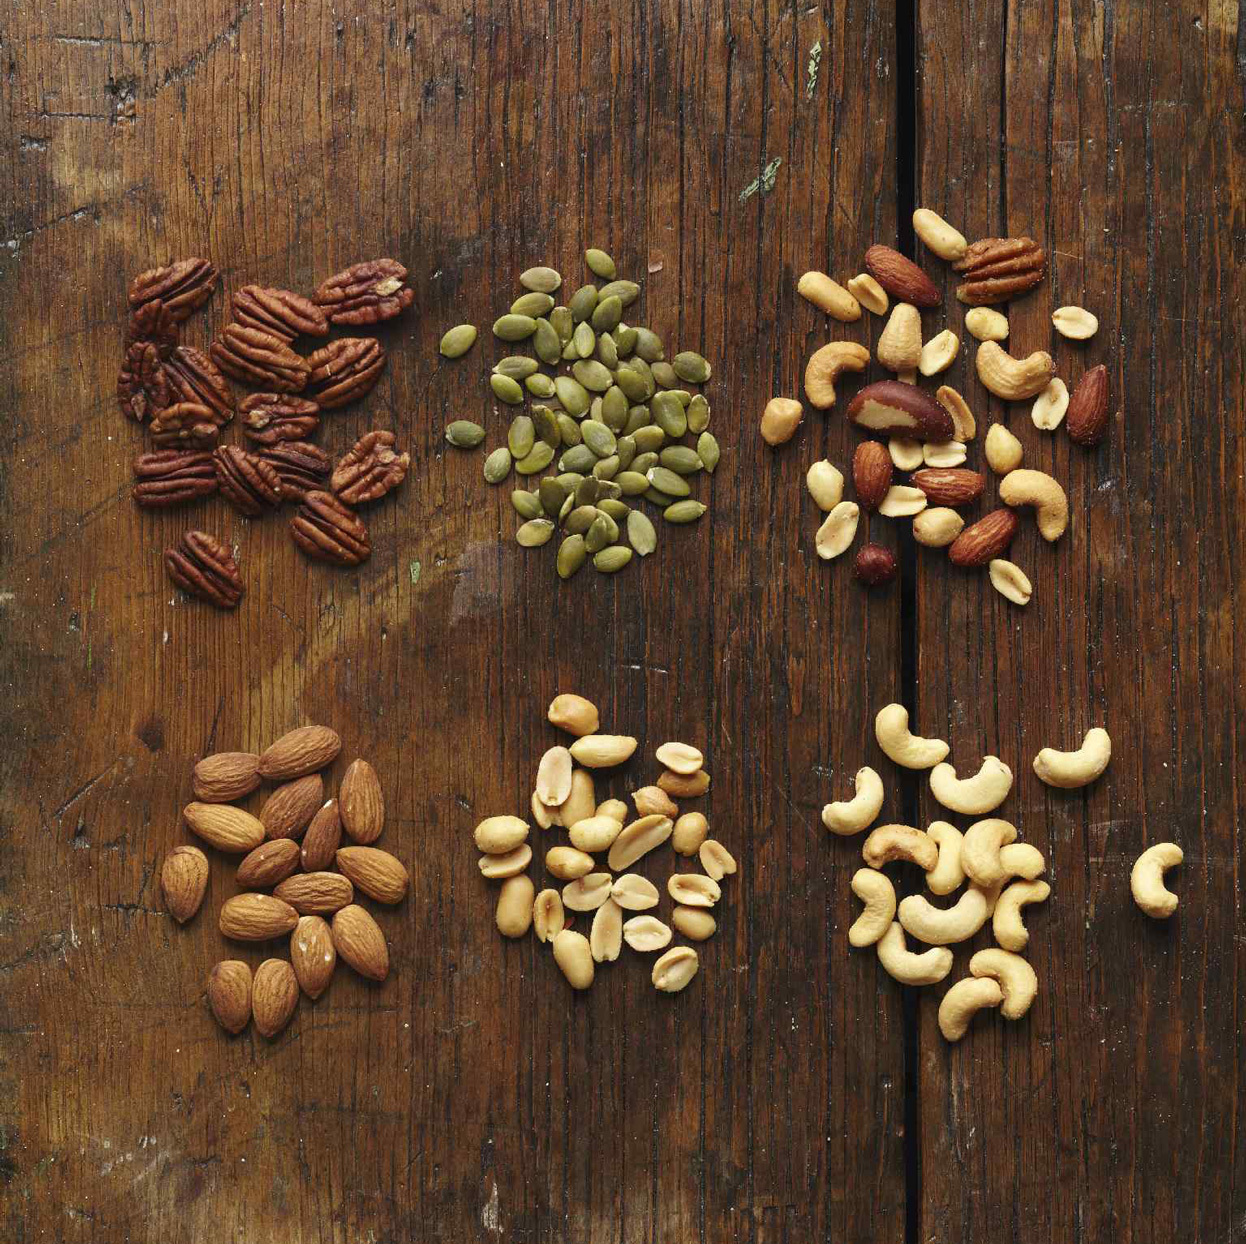 6 piles of different nuts, including almonds, peanuts and cashews, on wood background